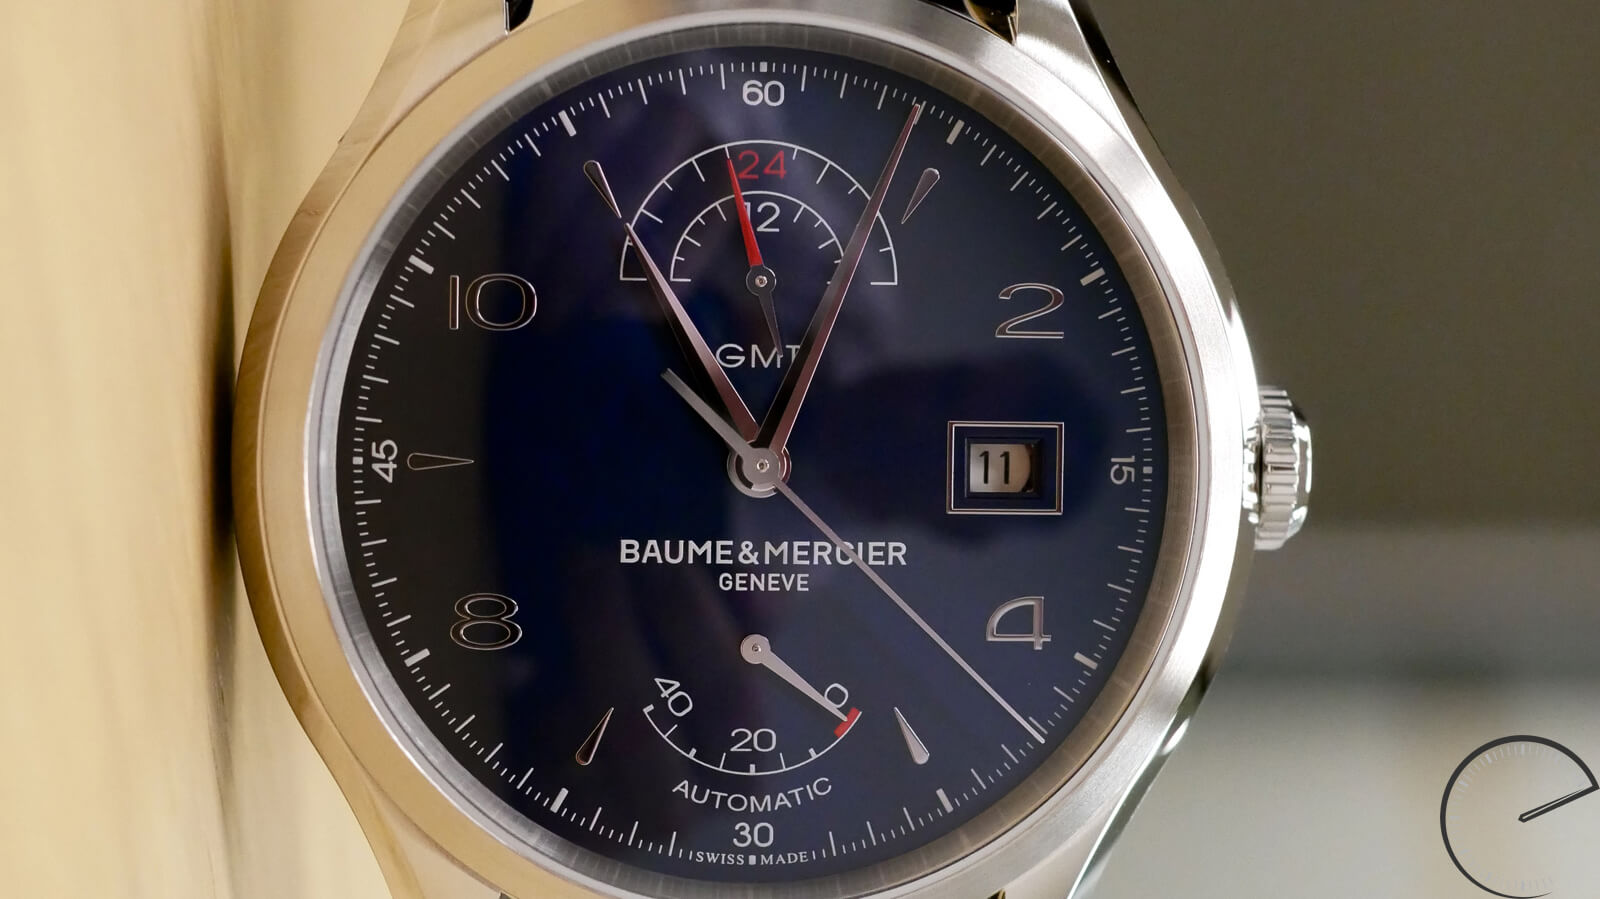 Baume et Mercier GMT Power Reserve - affordable timepiece with blue sunray dial